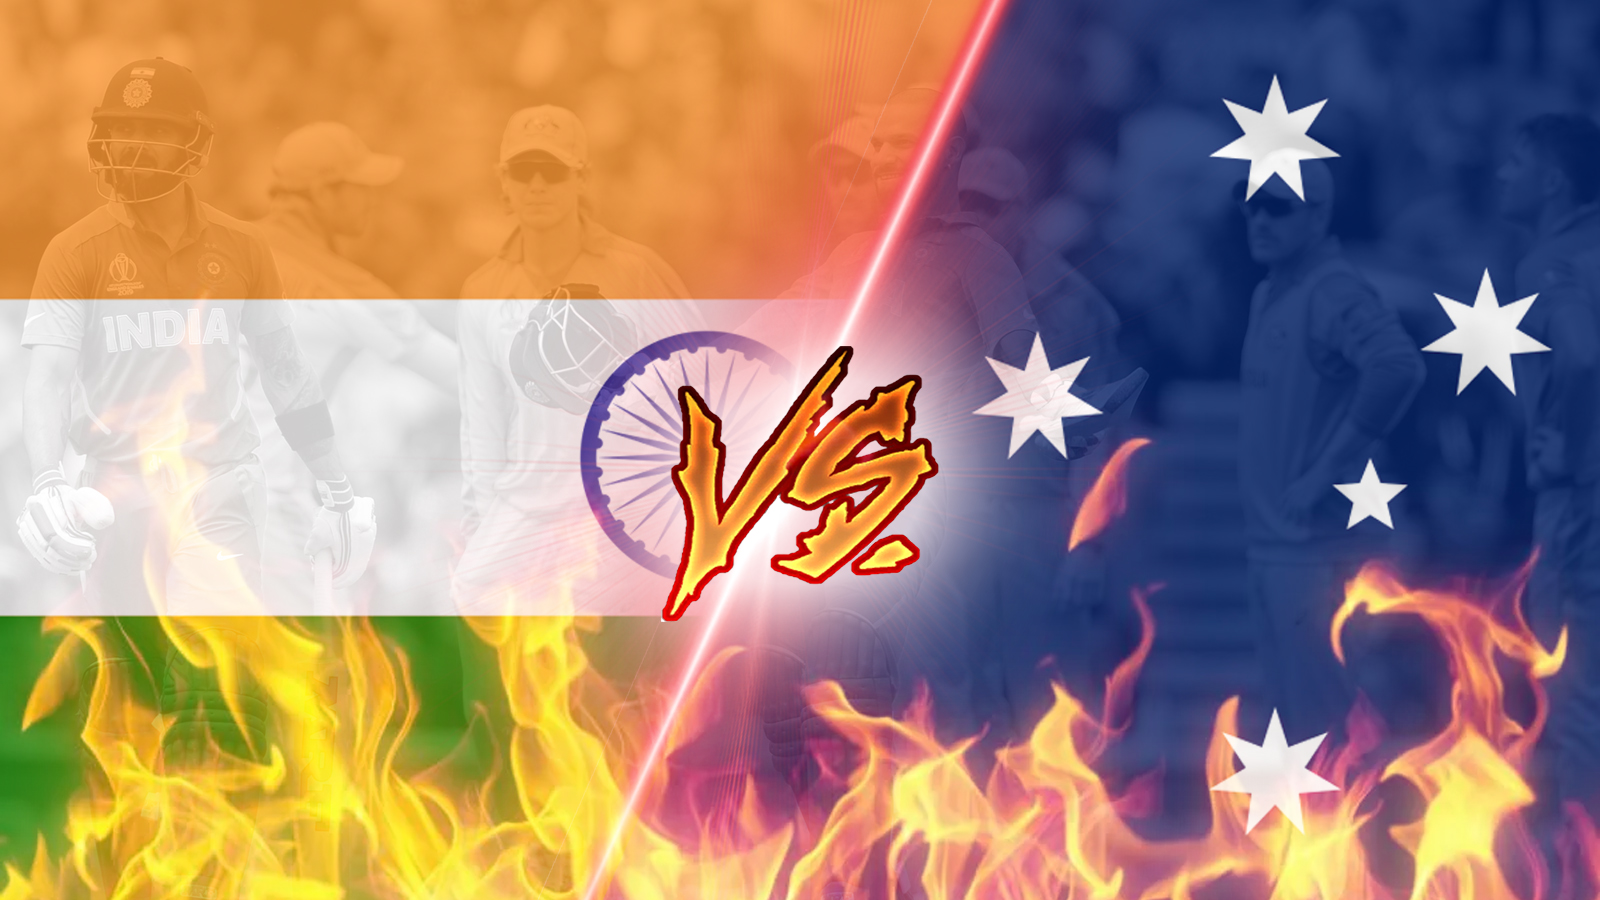 Bet on your favorite Indian or Australian cricket team.